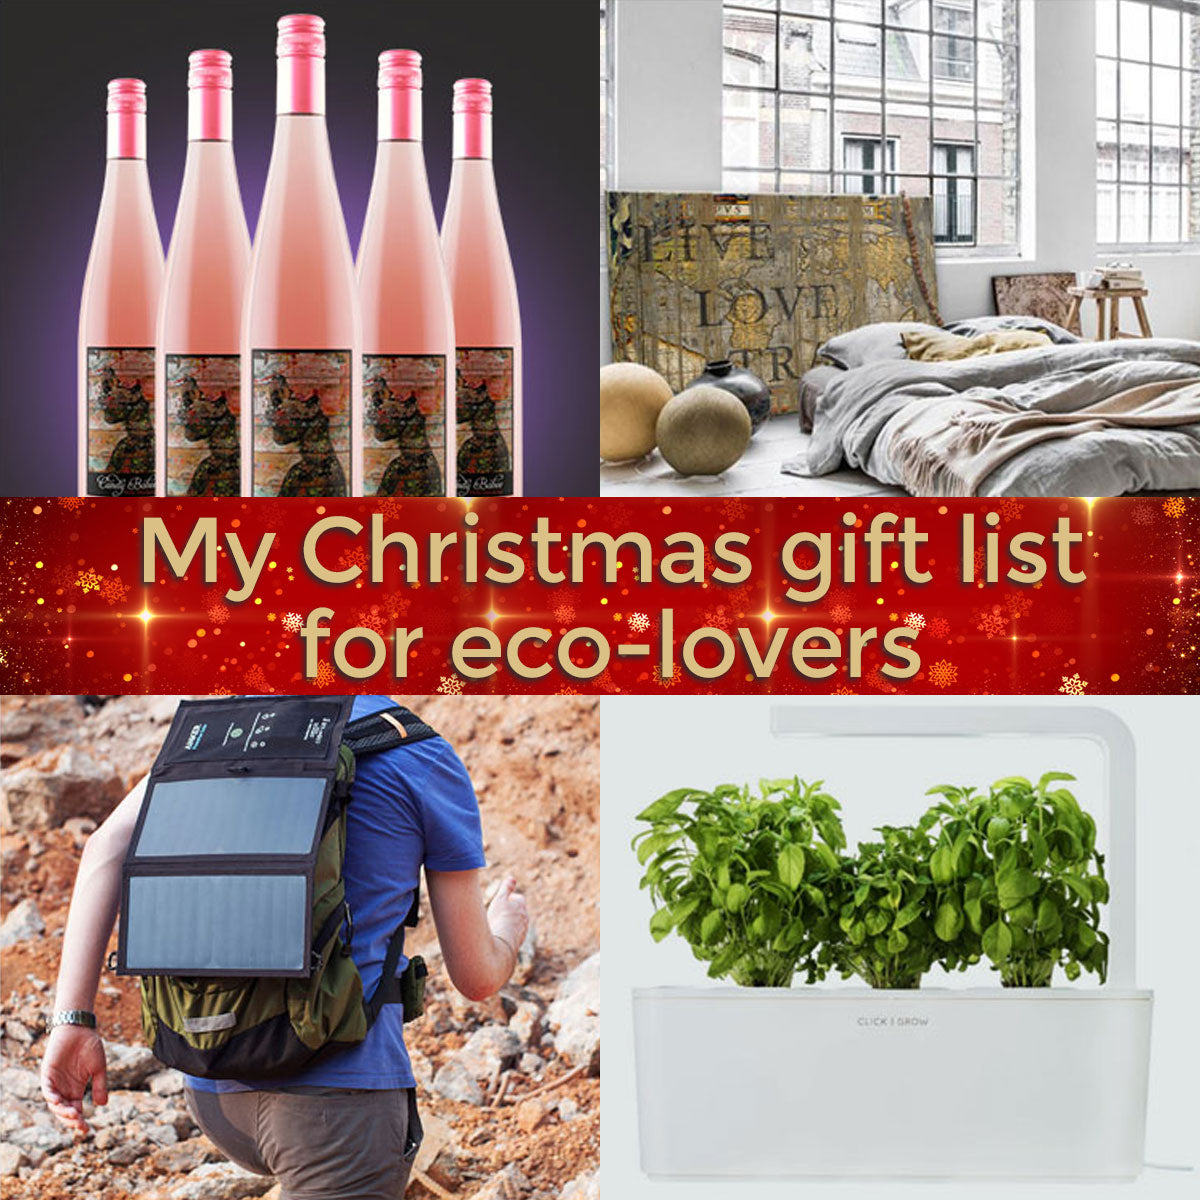 My Christmas gift list for eco-lovers🎄